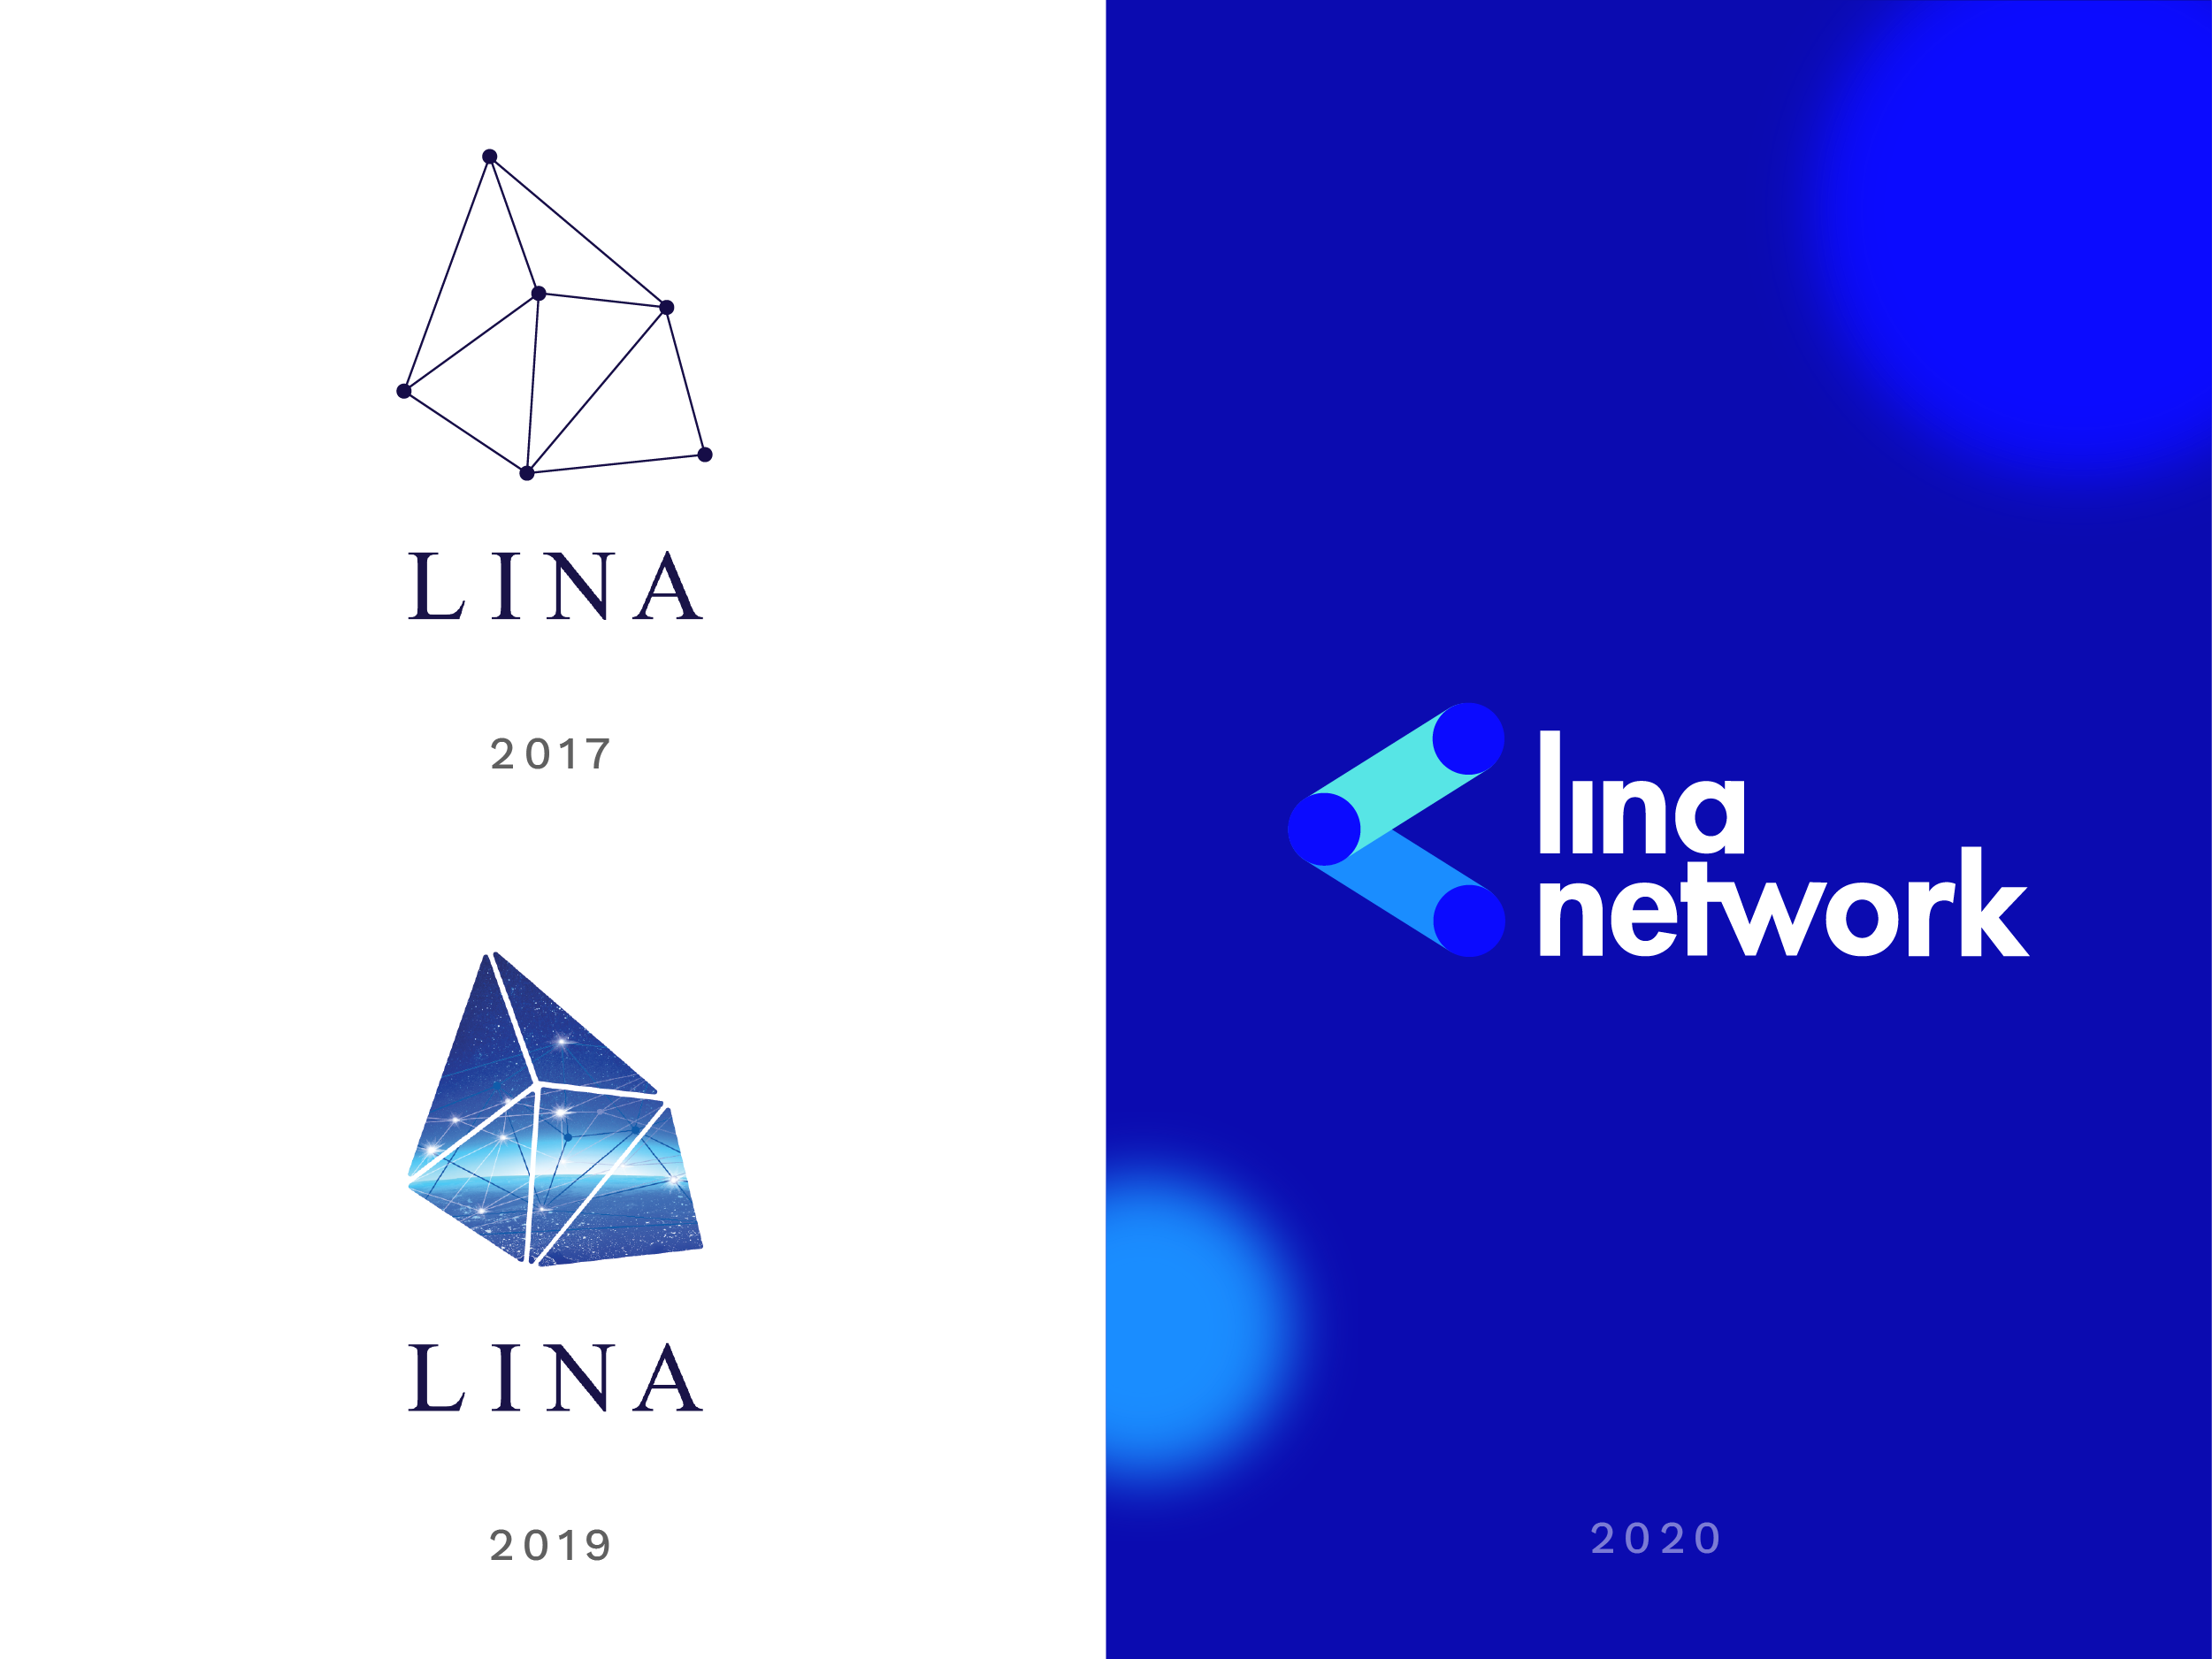 Lina Network launched new brand identity